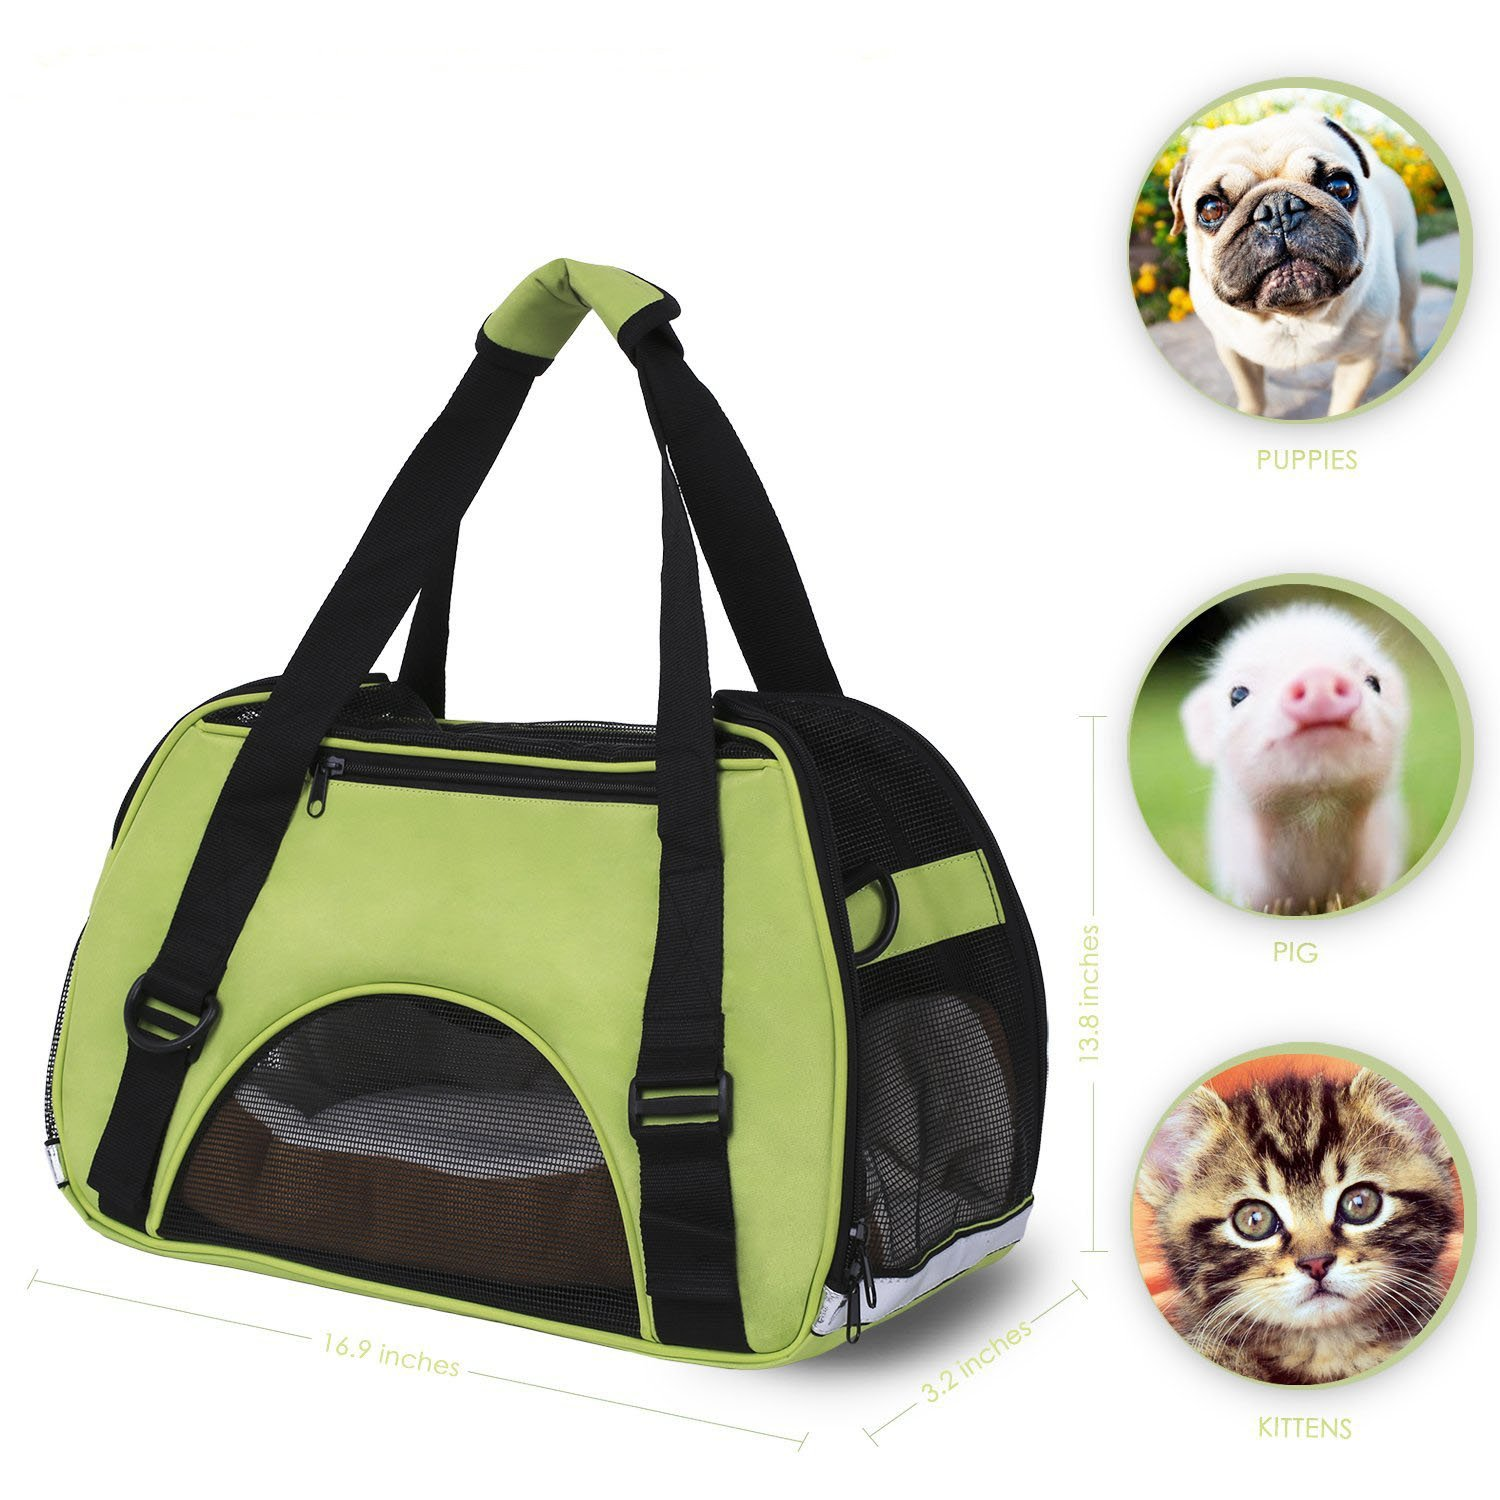 (Green) Power Q Pet Carriers Bag Cute Cuisine Breathable Soft-Sided Pet Carrier Cats Dogs Travel Crate Tote Portable Travel Handbag Shoulder Bag Outdoor